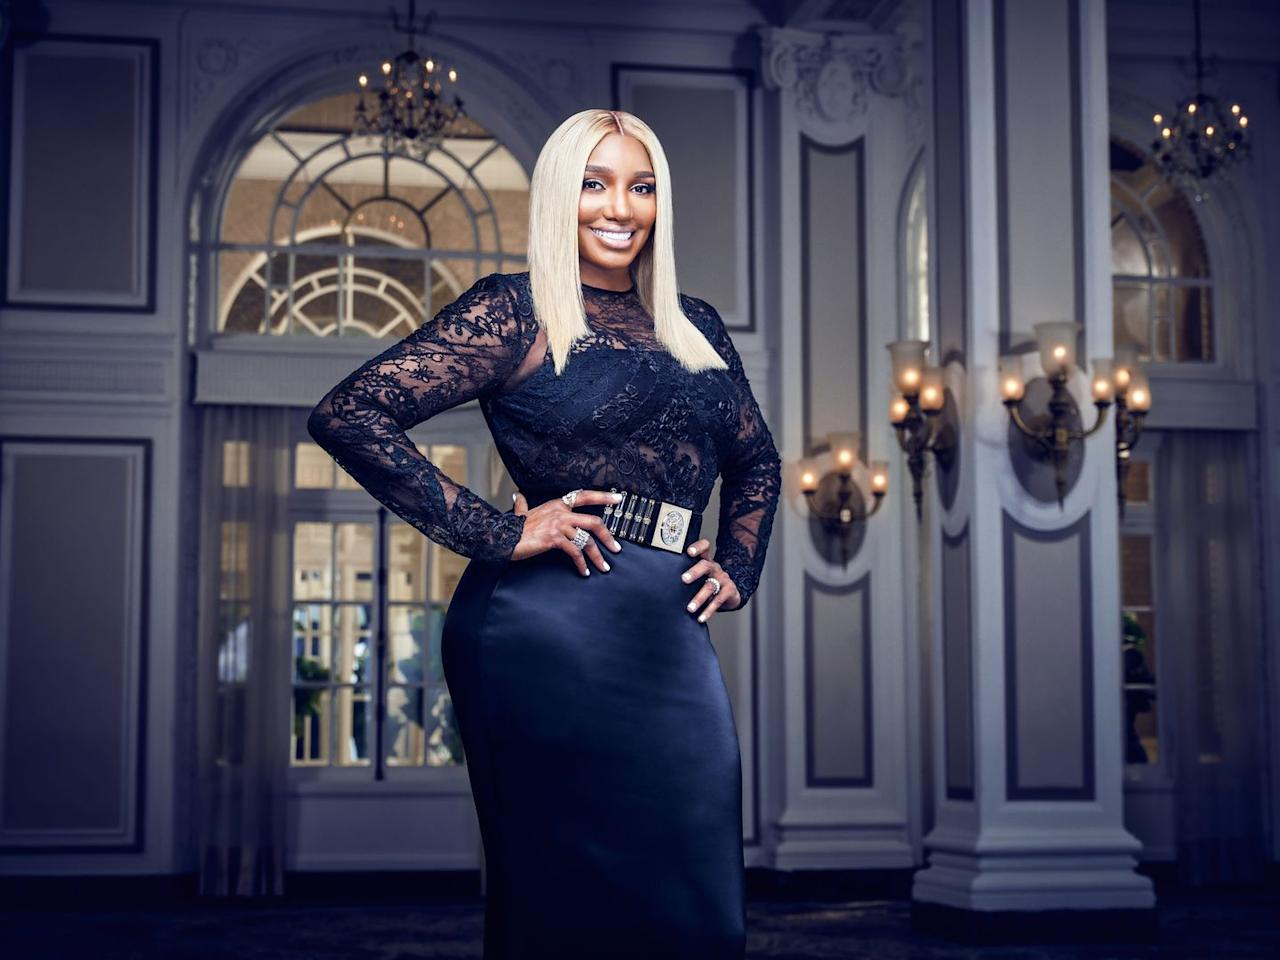 "<p>NeNe Leakes is one of the few Housewives who have left the show not once, but twice. NeNe was a fixture on the <em>Real Housewives of Atlanta</em> for the franchise's first seven seasons. She left in 2015 to focus on her acting career, but only two years later, she announced her return to <em>Atlanta</em> for season 10. But that didn't last for long. On Sept. 17, 2020, she announced on her <a href=""https://www.youtube.com/watch?v=BIxcCVqvUpU"" target=""_blank"">YouTube</a> channel that she will not be returning for <em>Atlanta</em>'s 13th season. </p><p>""I have been on an extremely, extremely long, exhausting, tiring, emotional negotiation,"" she said in the video. ""It has been hard, and I have made the very hard and difficult decision to not be a part of <em>Real Housewives of Atlanta</em> season 13.""</p><p>""It wasn't an easy decision for me,"" she continued. ""It was hard. I started on <em>The Real Housewives of Atlanta</em> in 2008. We took off like a rocket. You could have never told me that I would start on this little show and it still be going strong 13, 14 years later. I'm just so happy that I can say that I was a part of a genre that opened up doors for Black ensemble reality shows to step up and be a part of what we all now love so much, reality TV.""</p><p>She went on to thank Bravo, the <em>Atlanta</em> cast, her production team and her fans. NeNe has left the building — again! </p>"